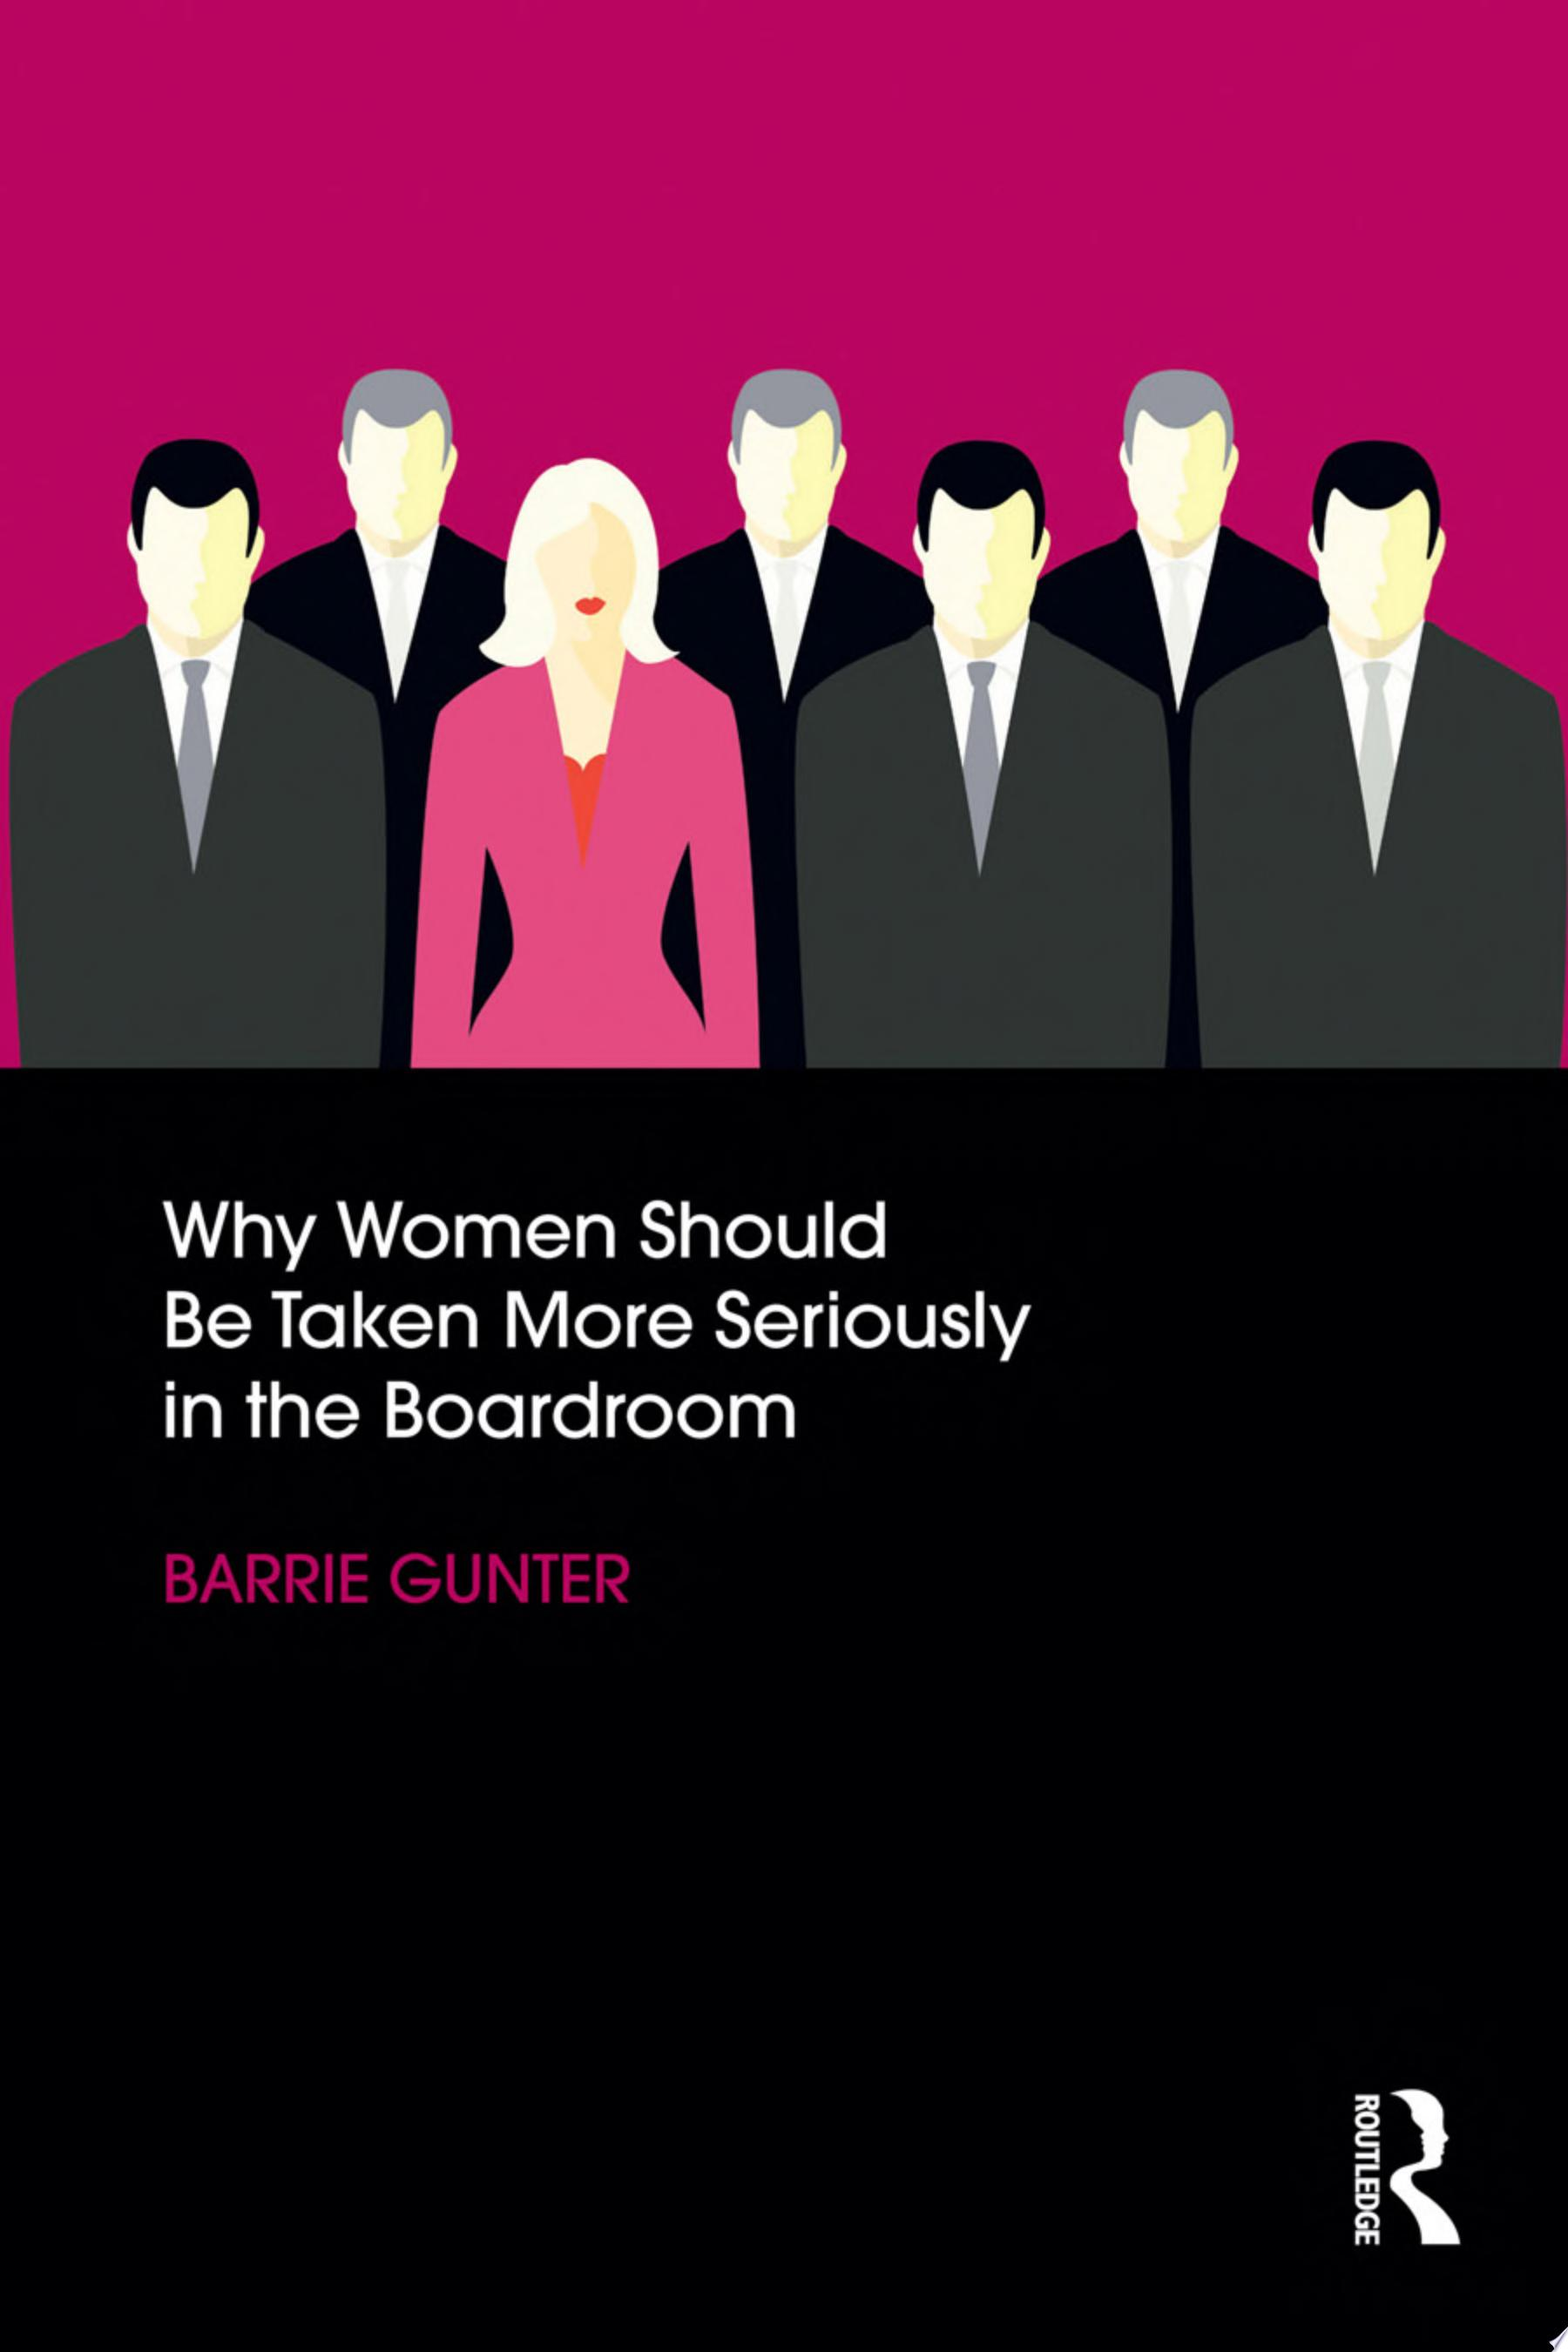 Why Women Should Be Taken More Seriously in the Boardroom